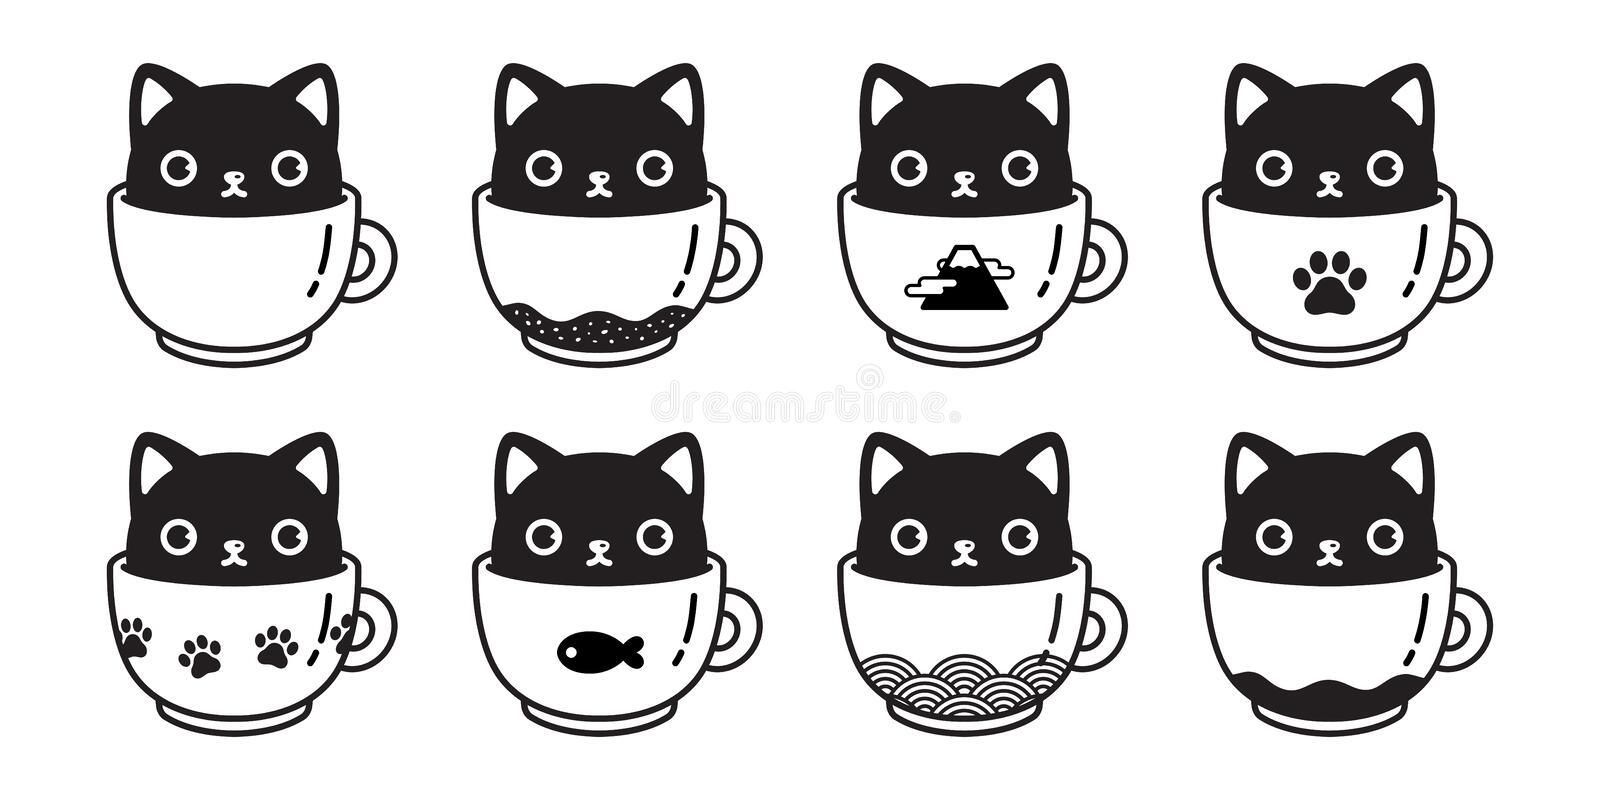 Cat vector icon kitten coffee cup paw calico logo fish symbol cartoon character illustration doodle design vector illustration